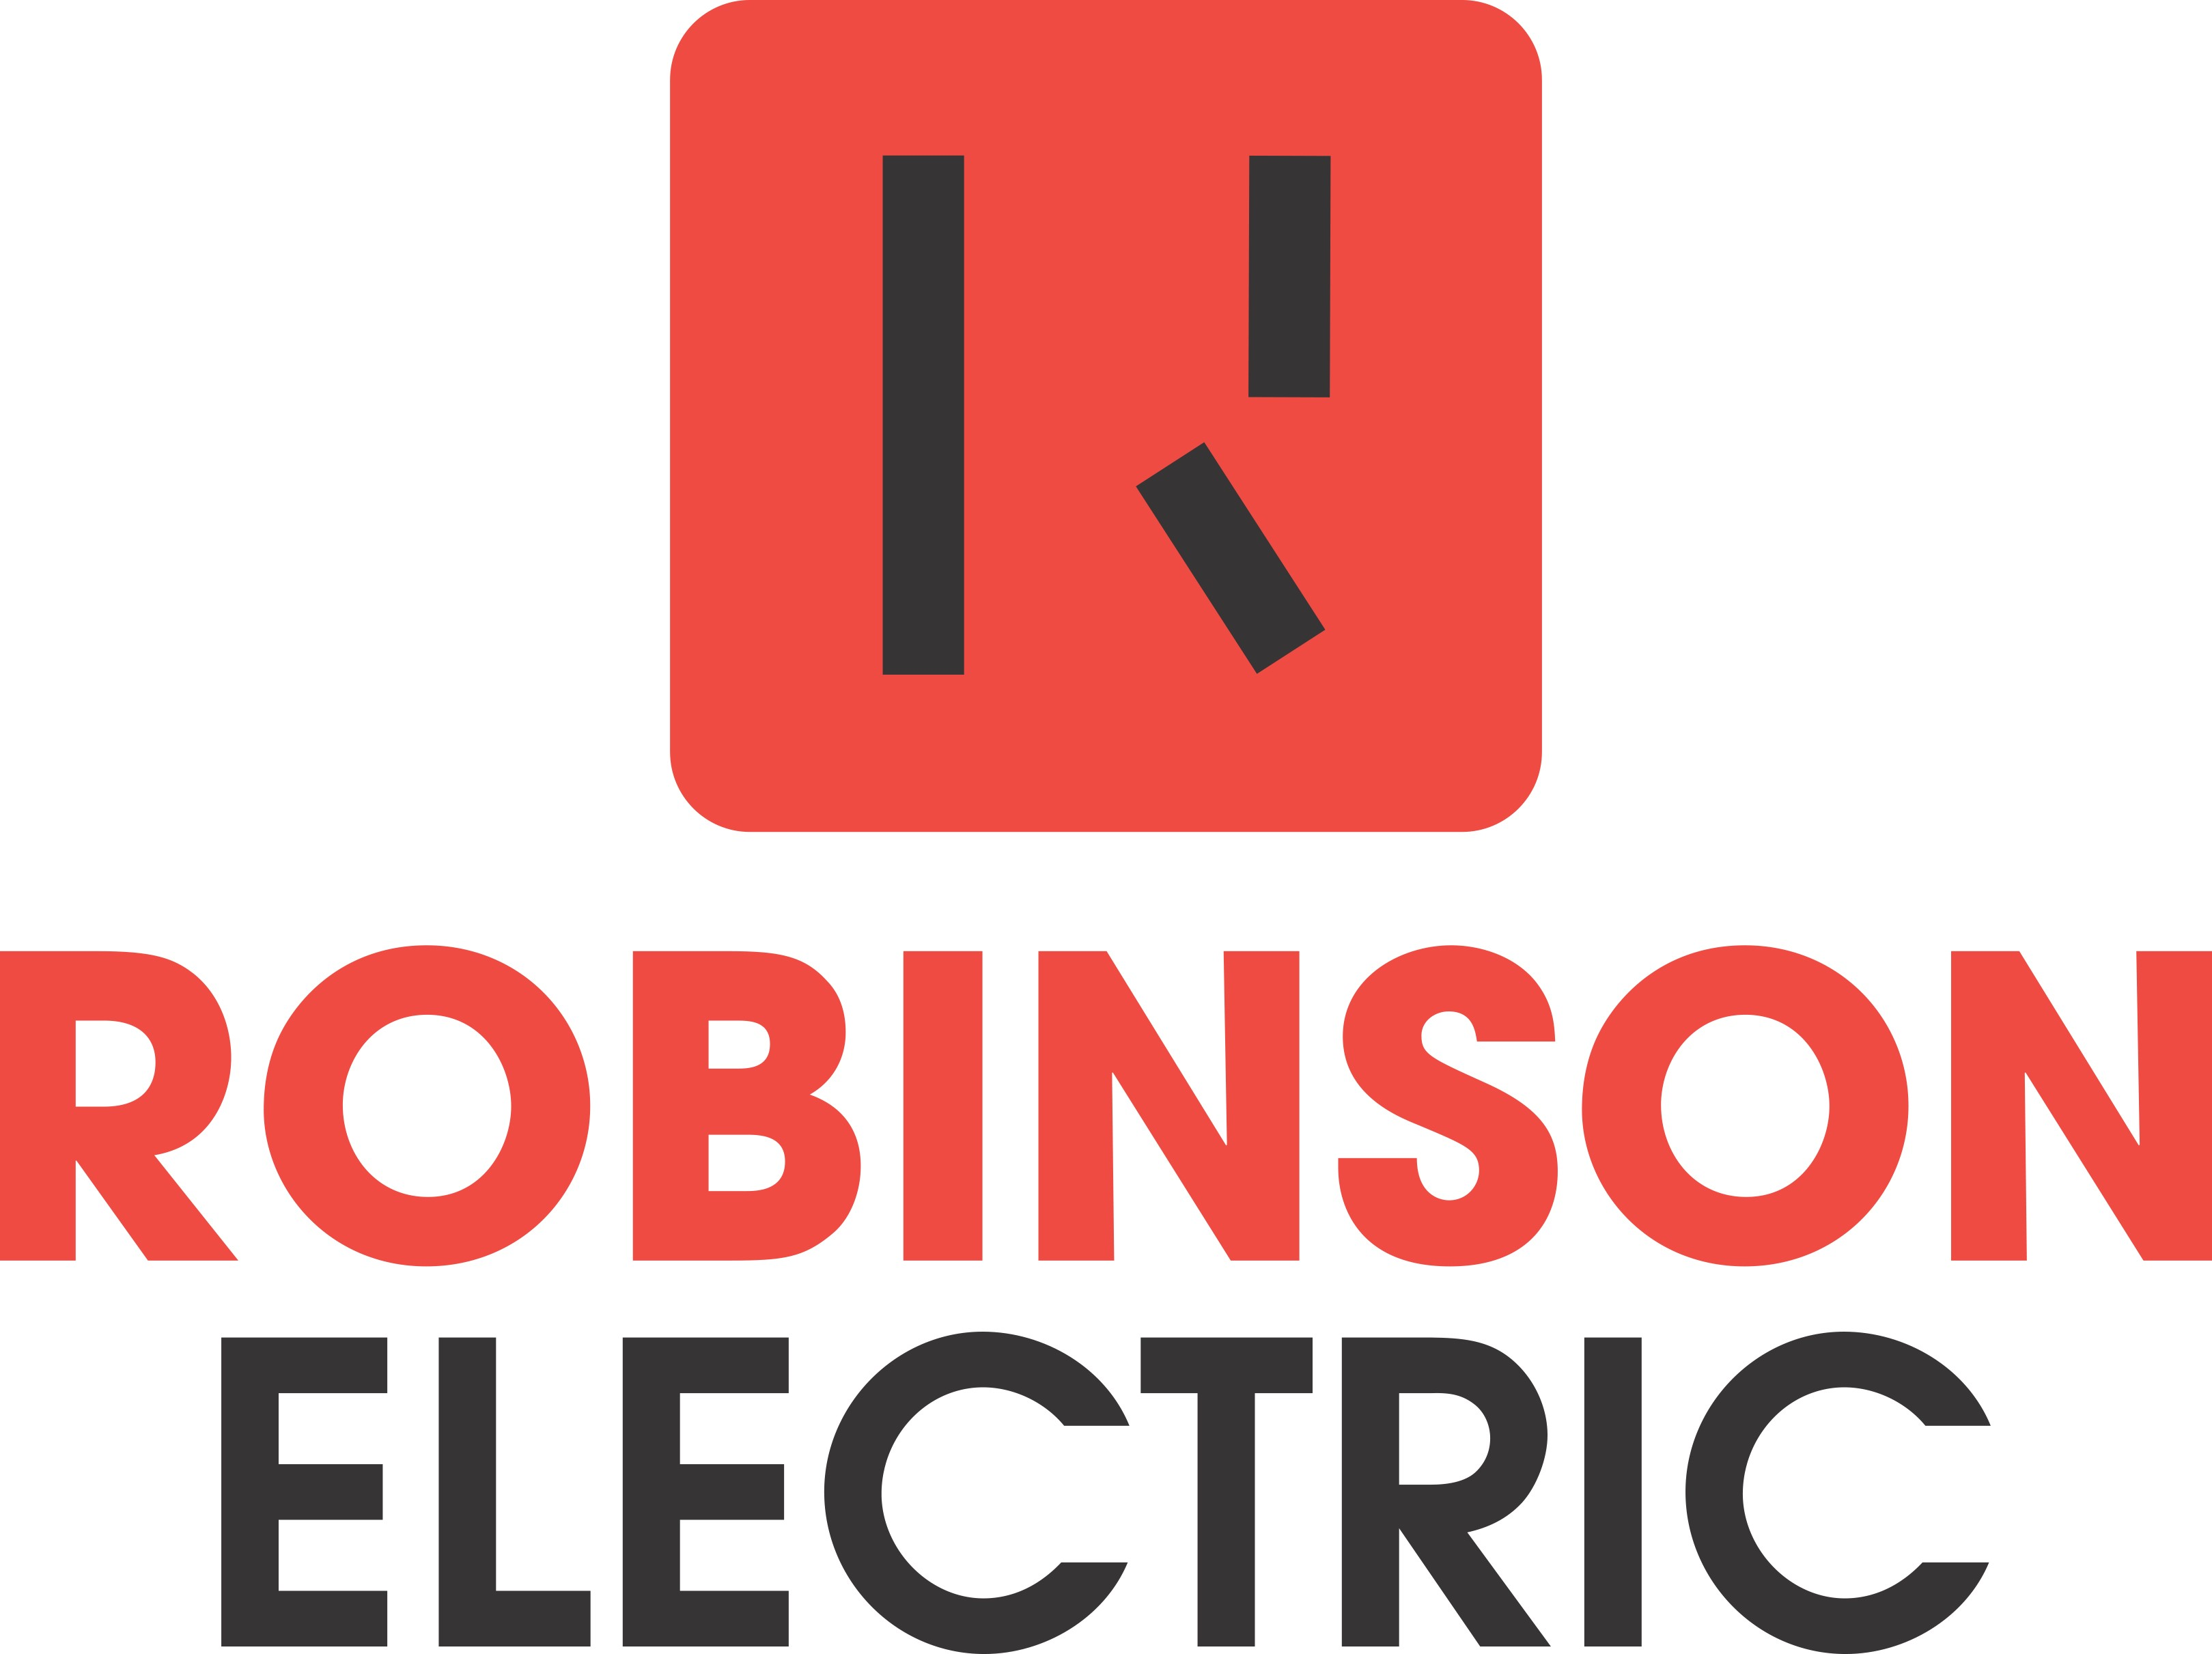 Robinson Electric jpeg